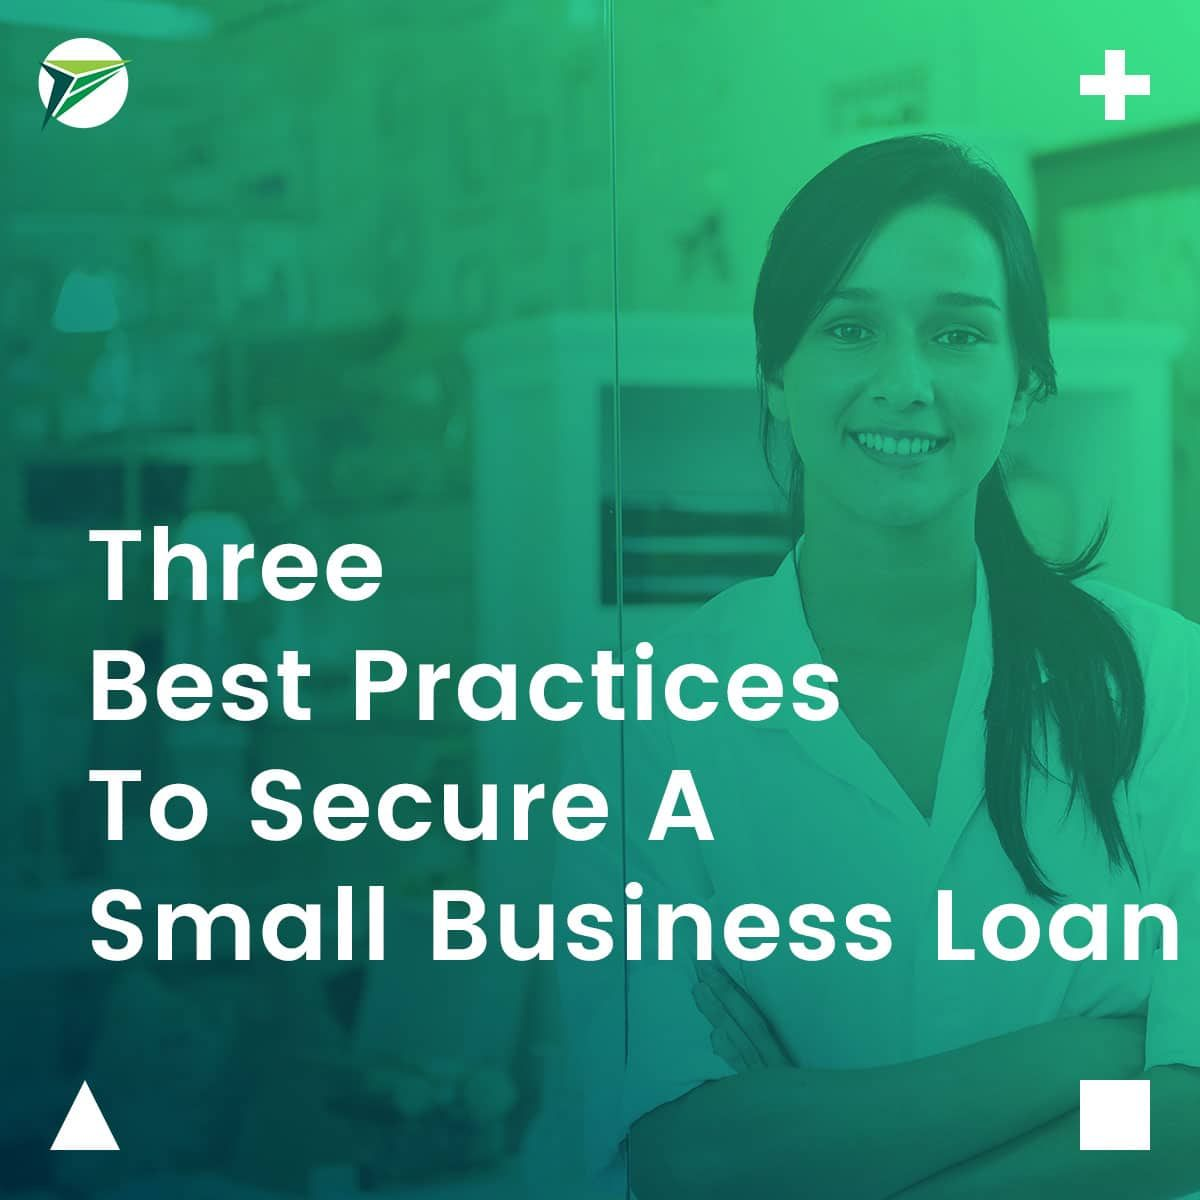 Three-Best-Practive-To-Secure-A-Small-Business-Loan